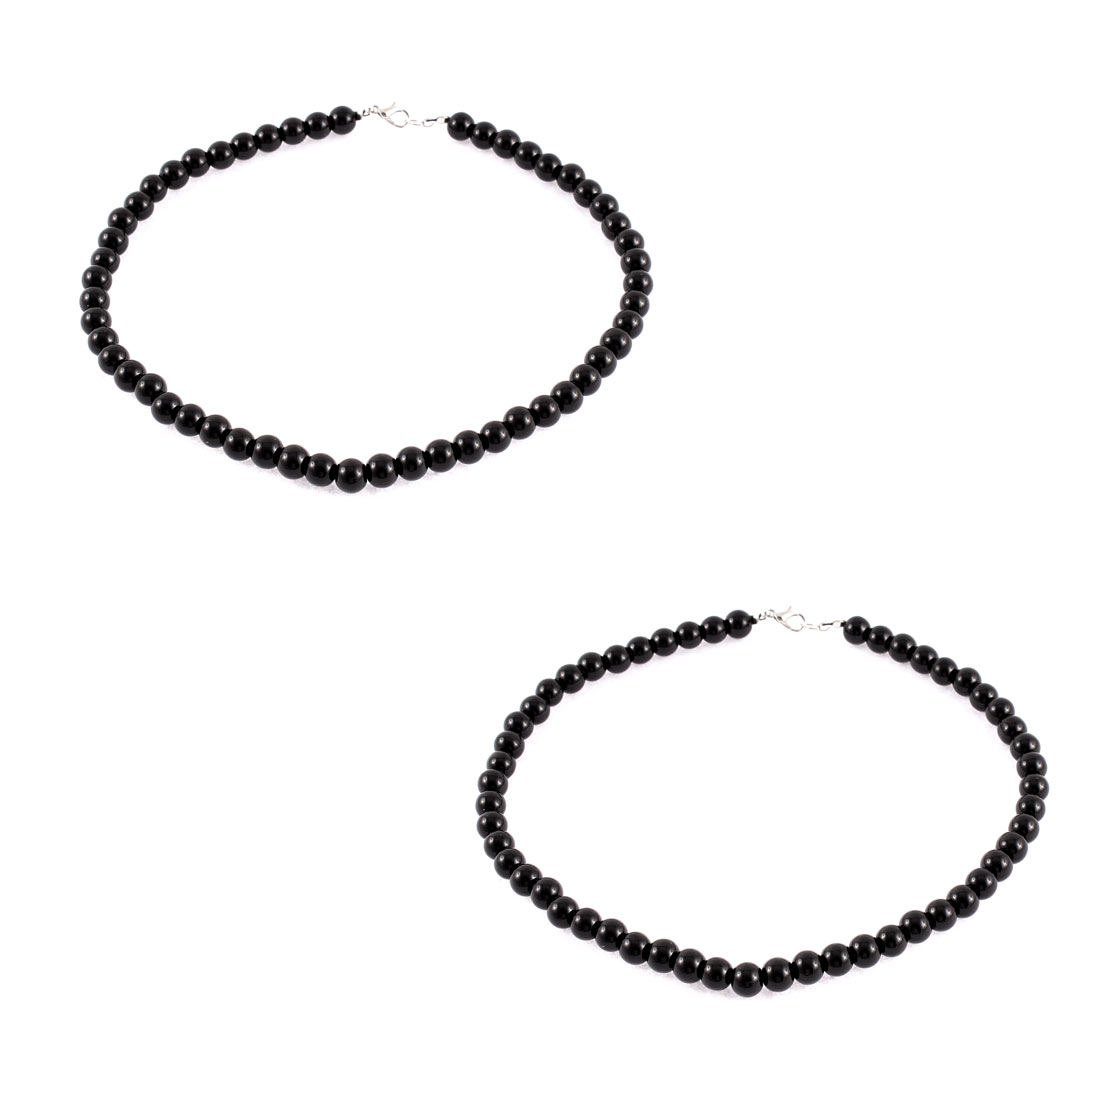 Party Lady Round Imitation Pearls Beaded Linked Necklace Chain Neck Decor Black 2pcs